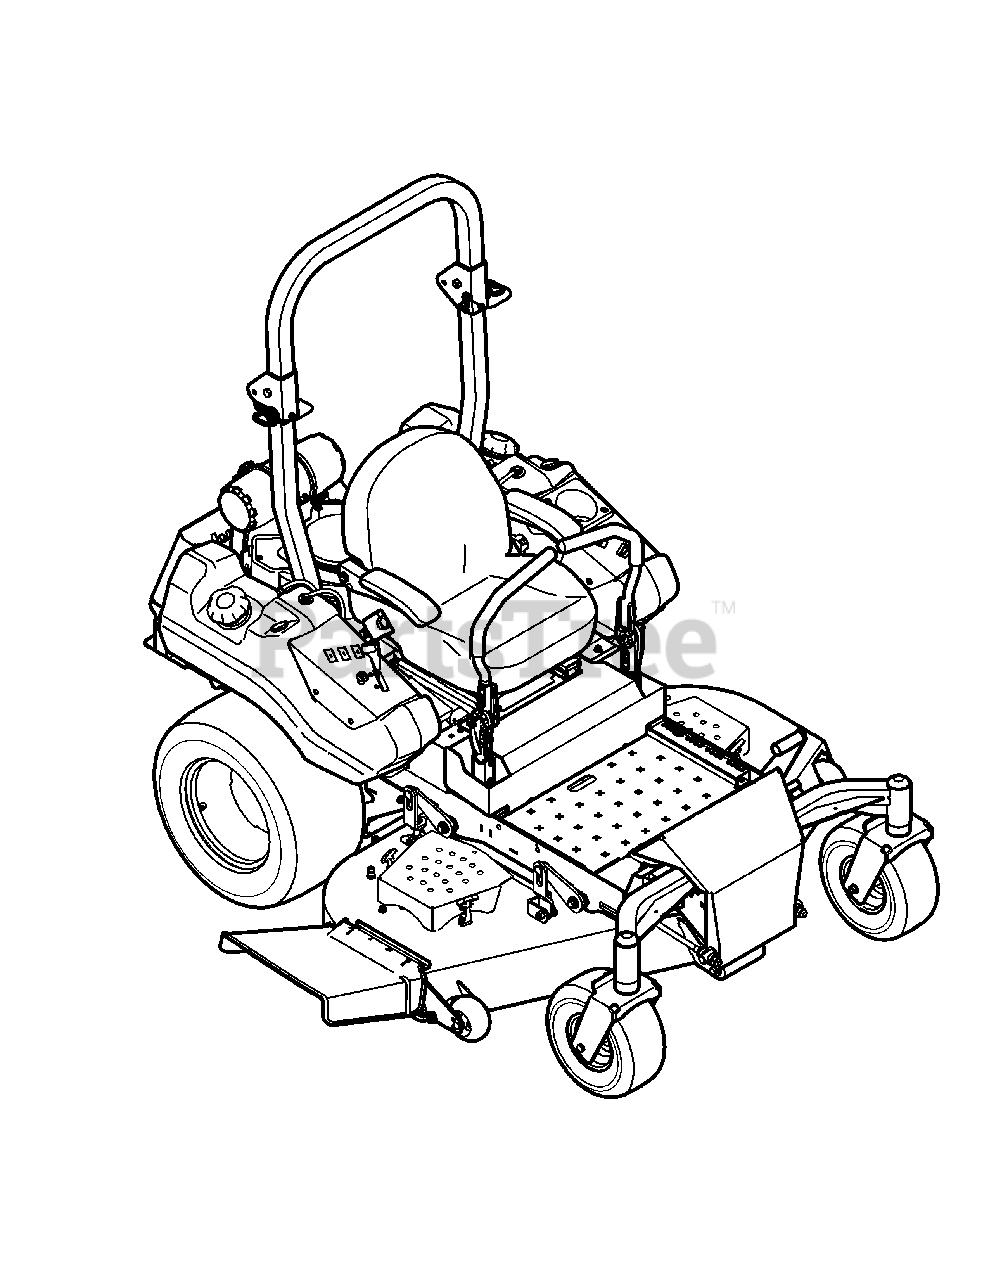 Cub Cadet Parts on the .Quick Reference LZ-60 Diagram for